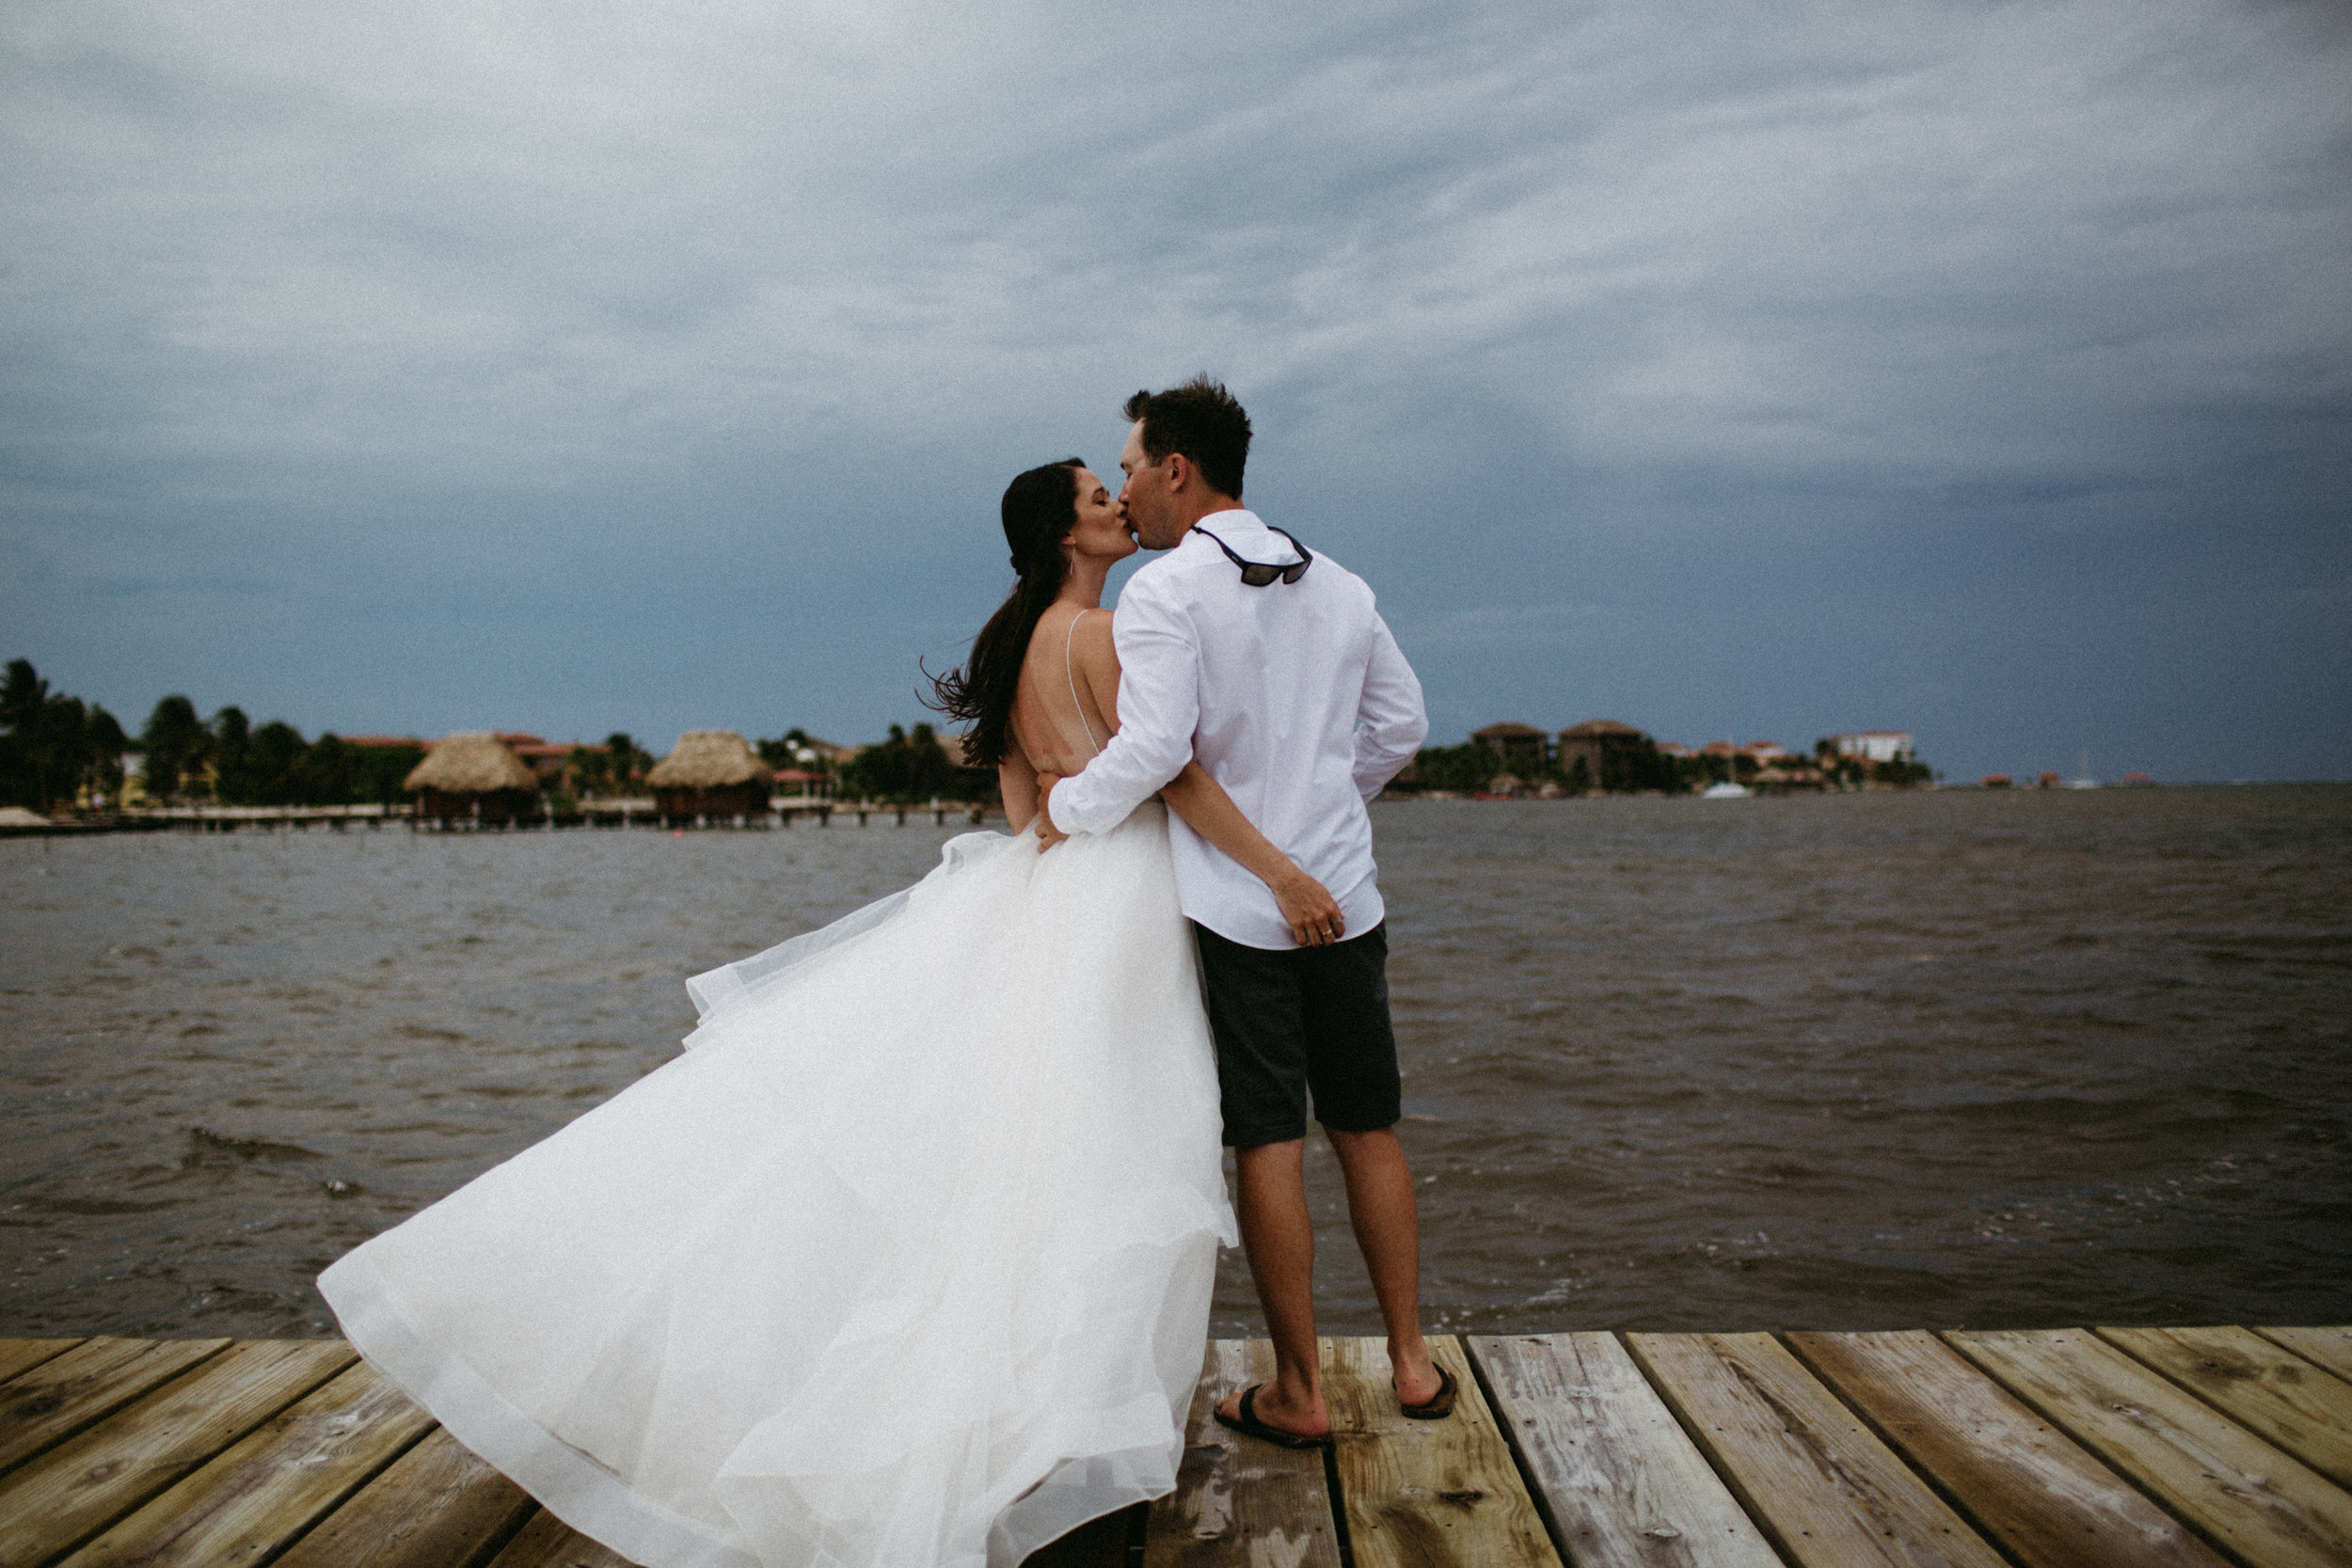 san-pescador-belize-wedding-christinemariephoto-j-k-42.jpg